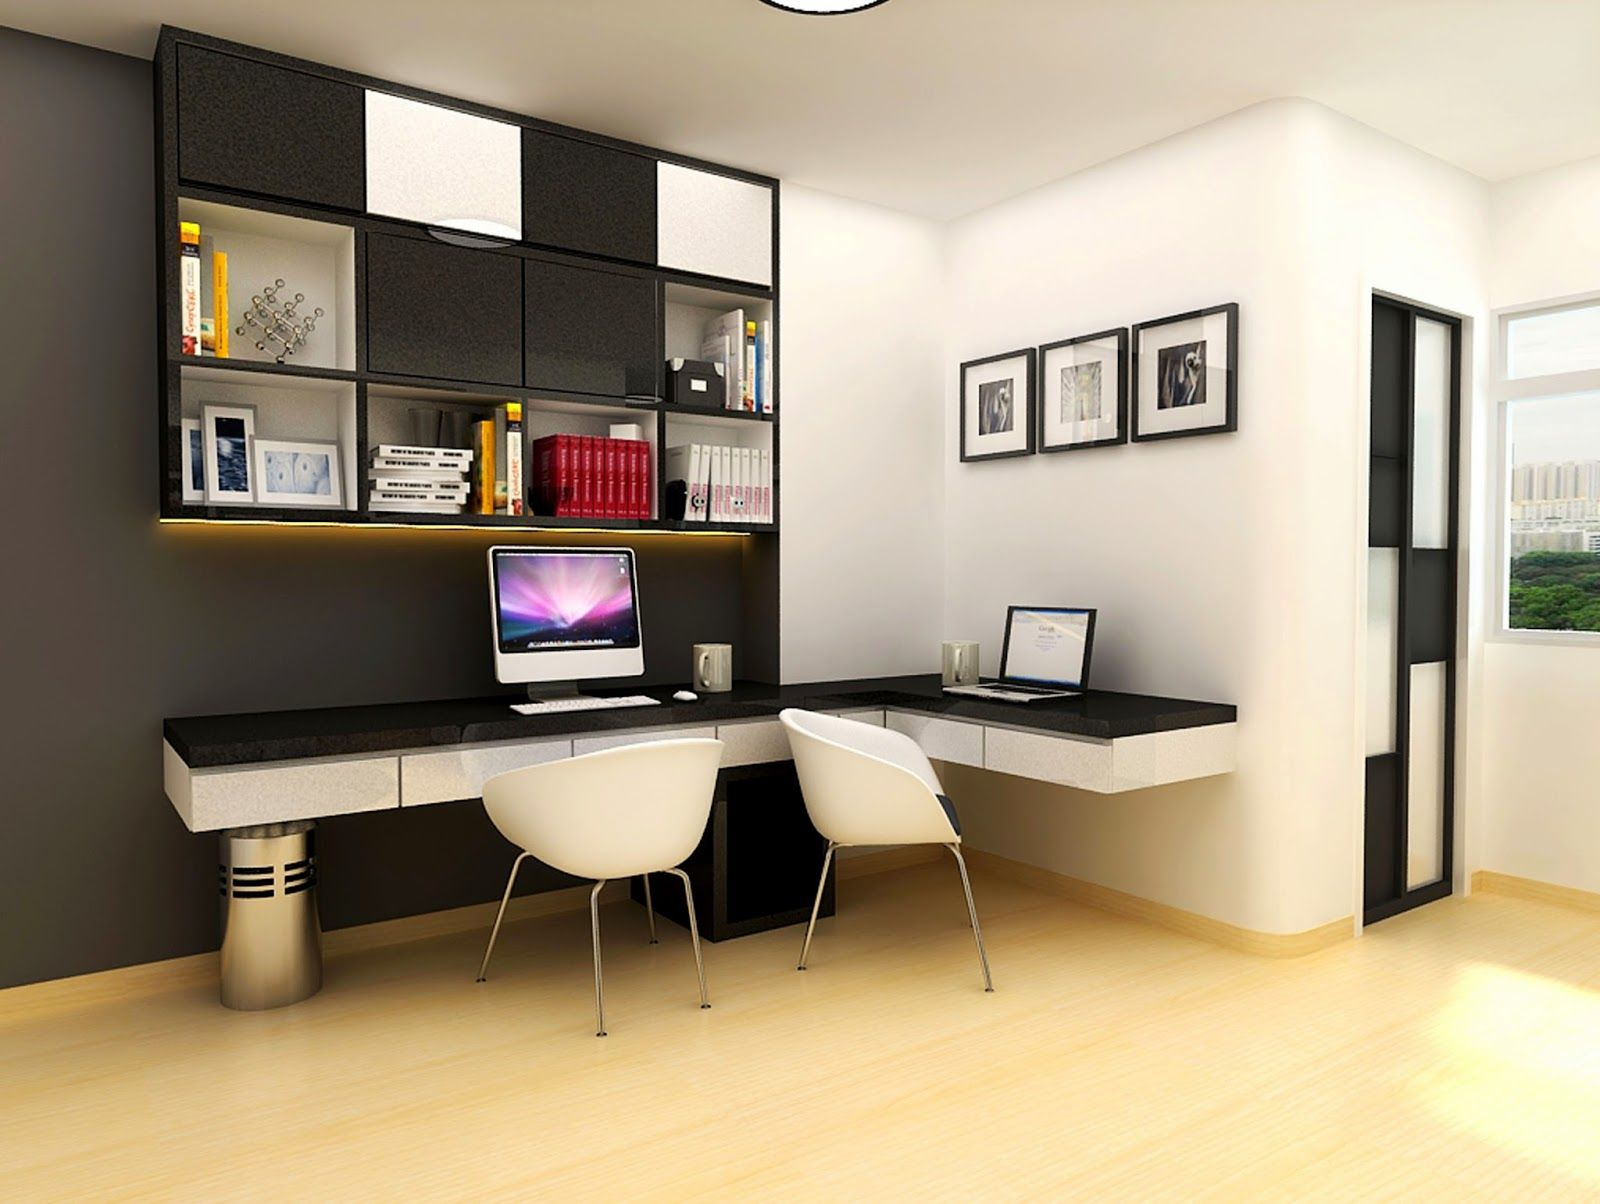 Design Inspirations 10 Neat Yet Fun Study Room Ideas For Teenagers Simple And Minimalist